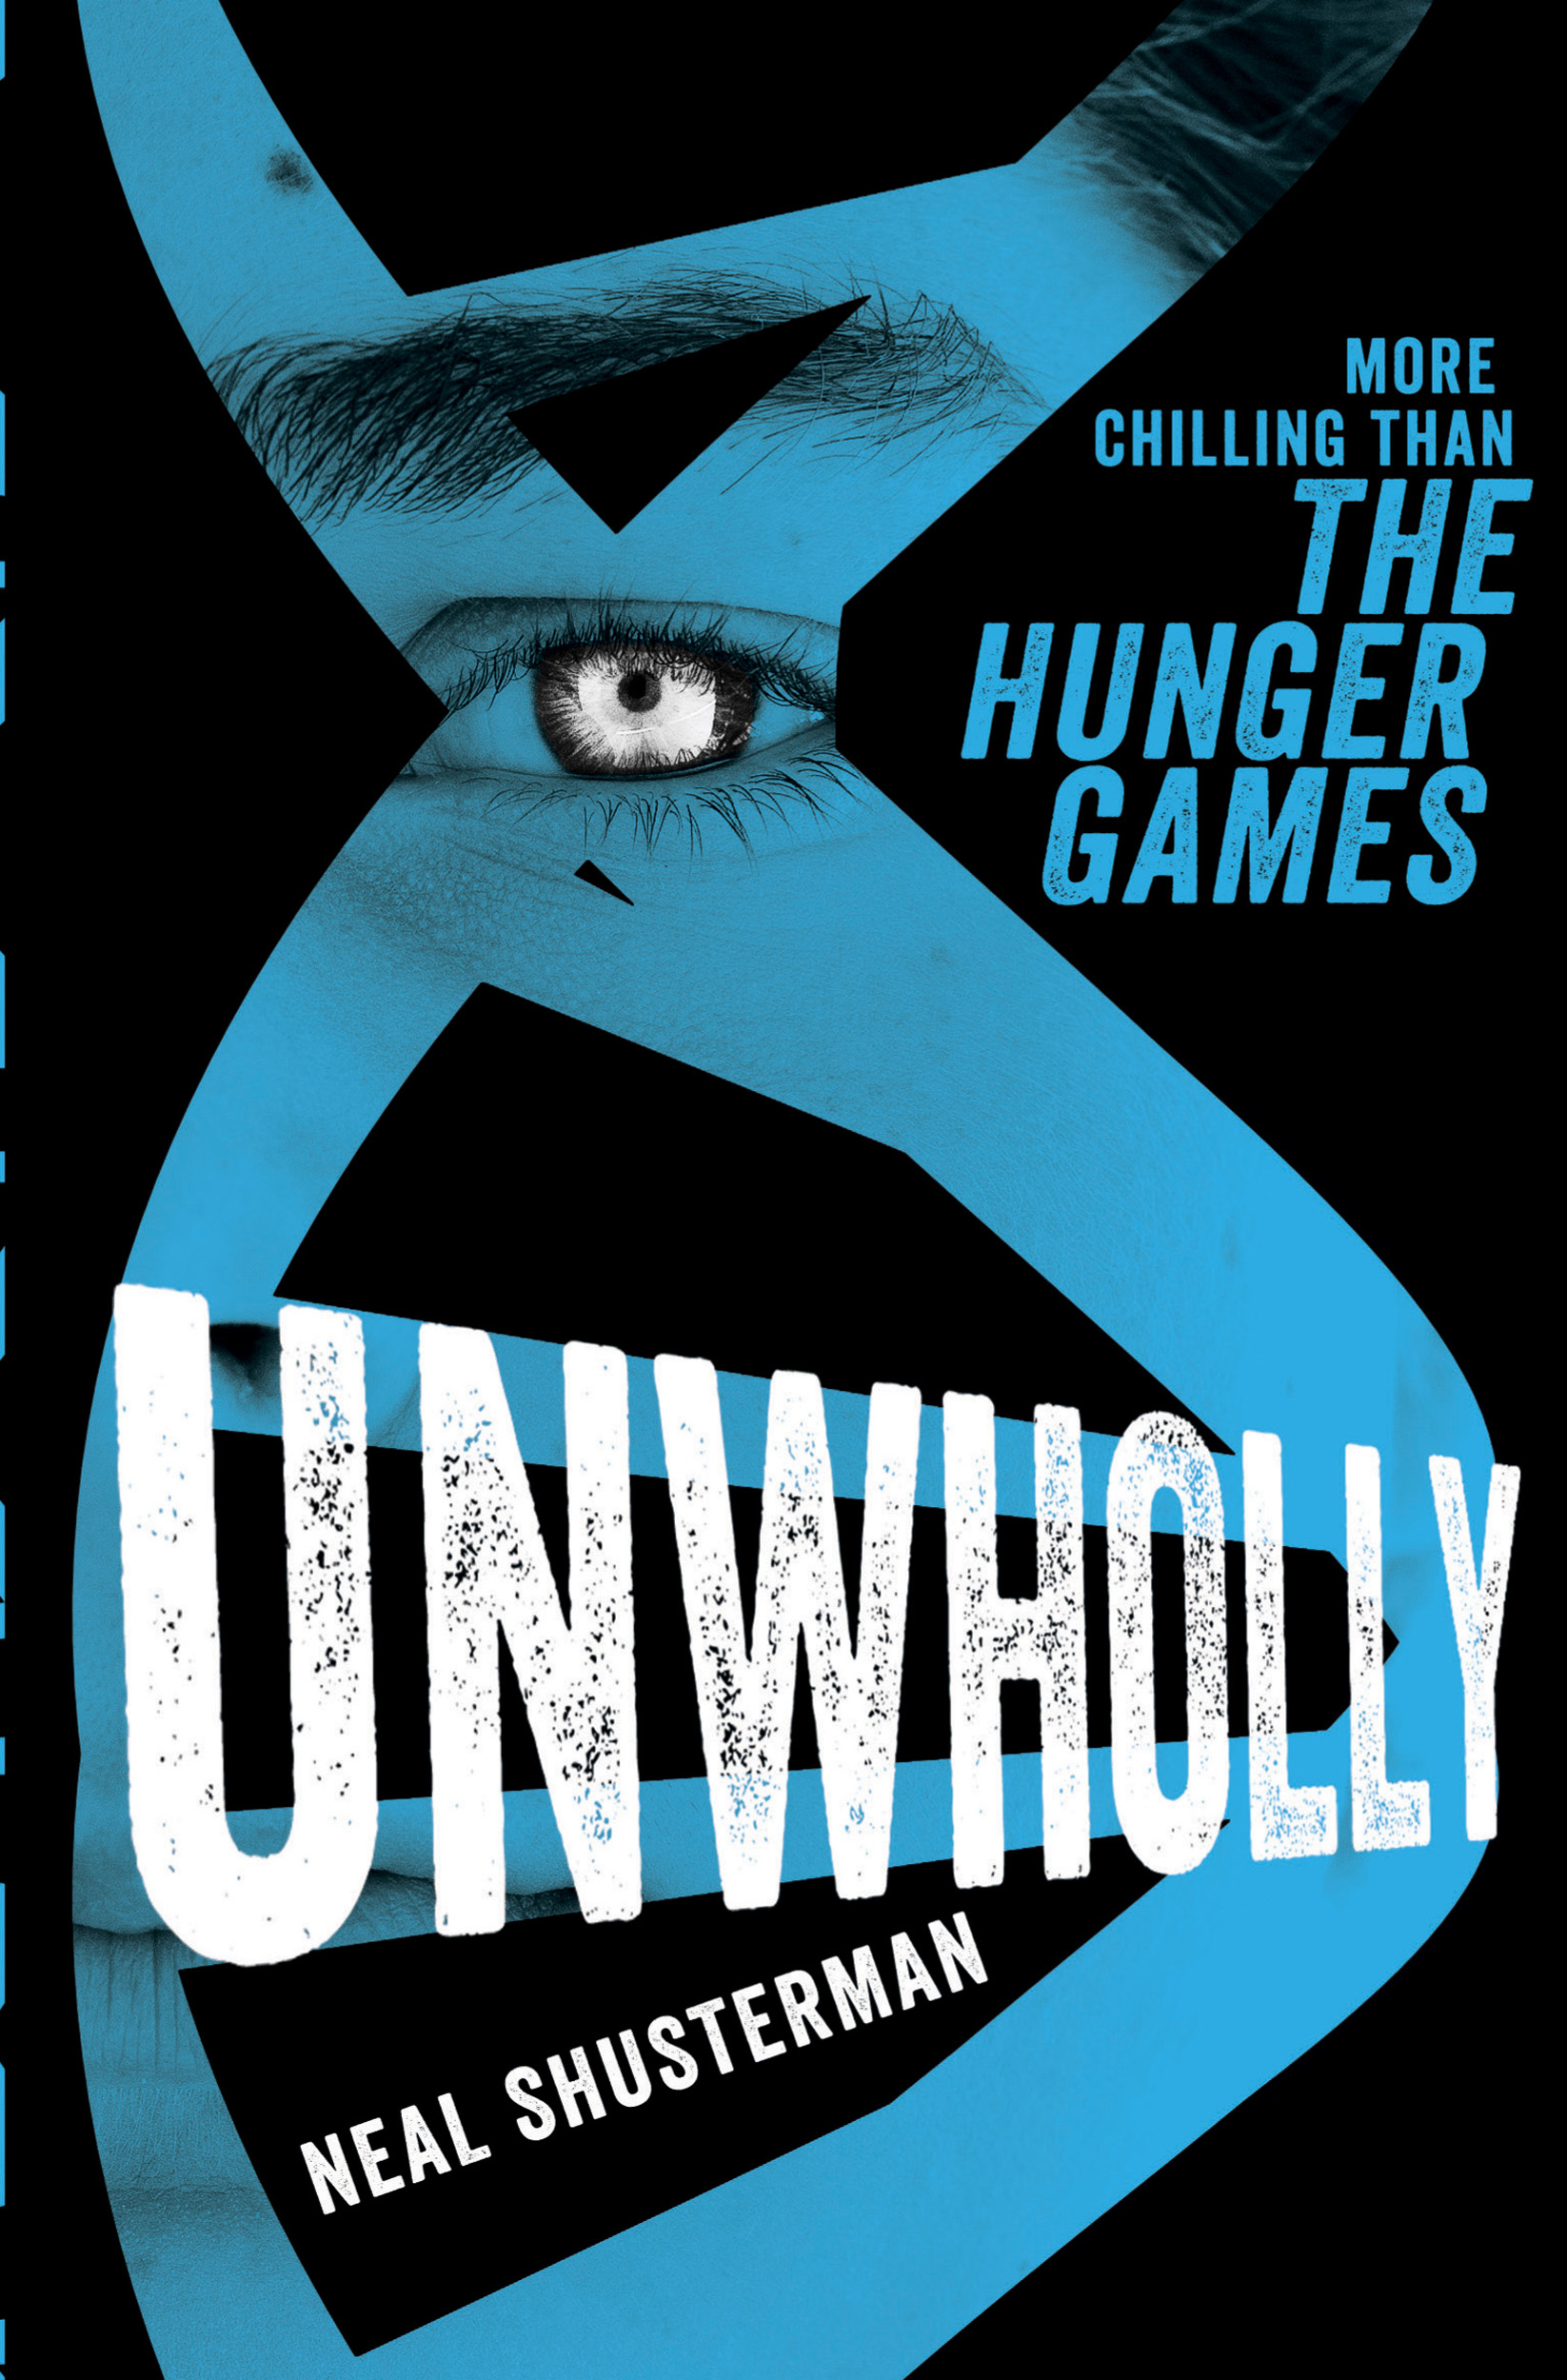 Book Cover Image (jpg): Unwholly